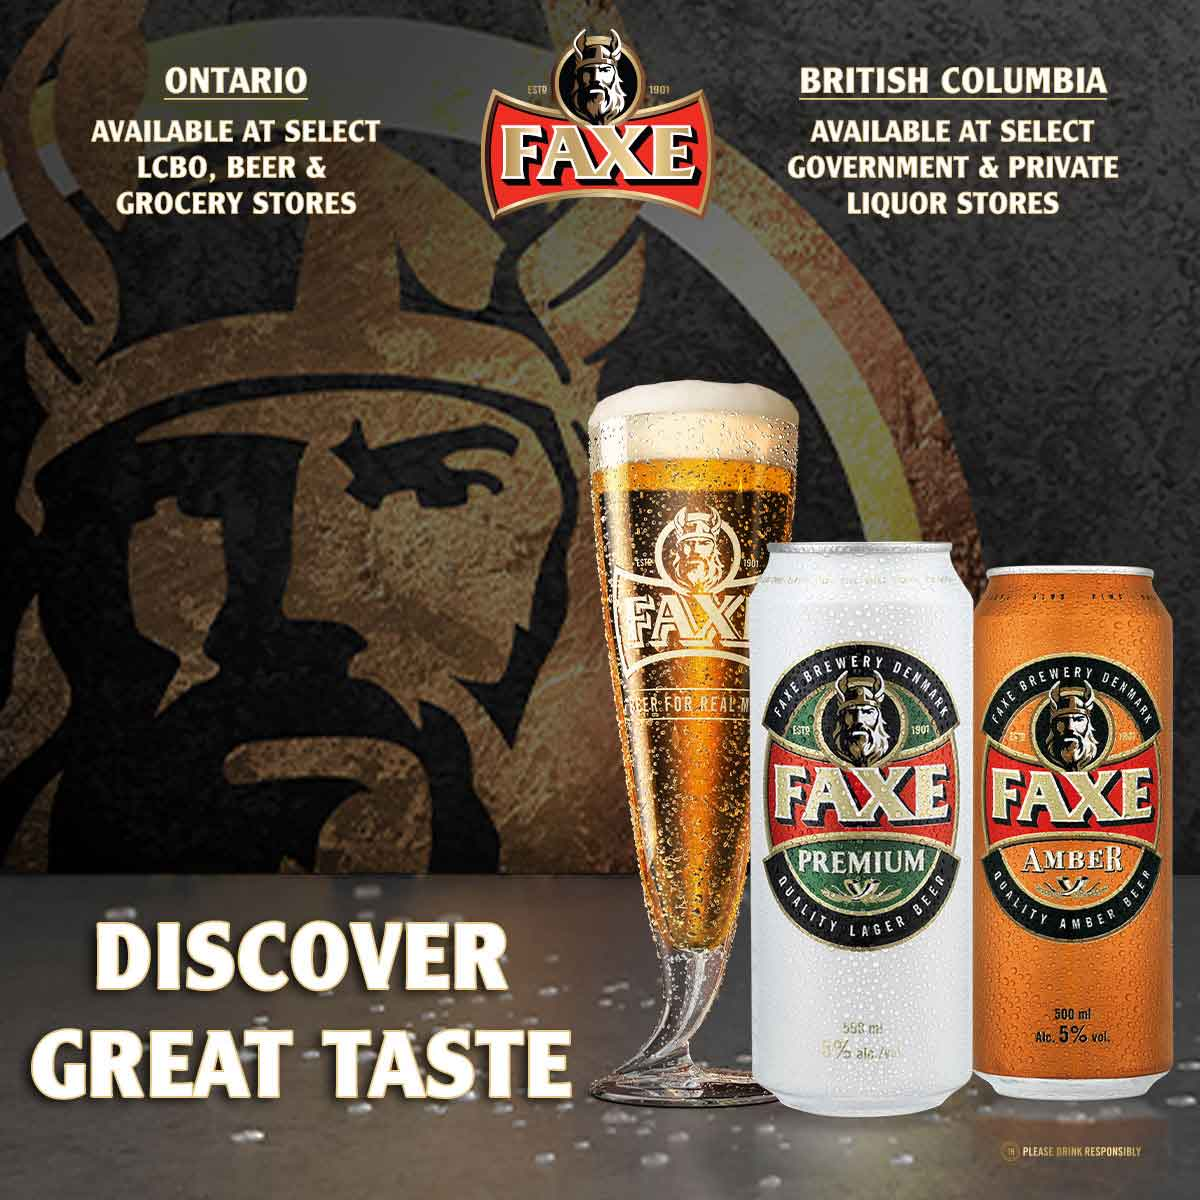 ENJOY FAXE BEER THIS SUMMER!